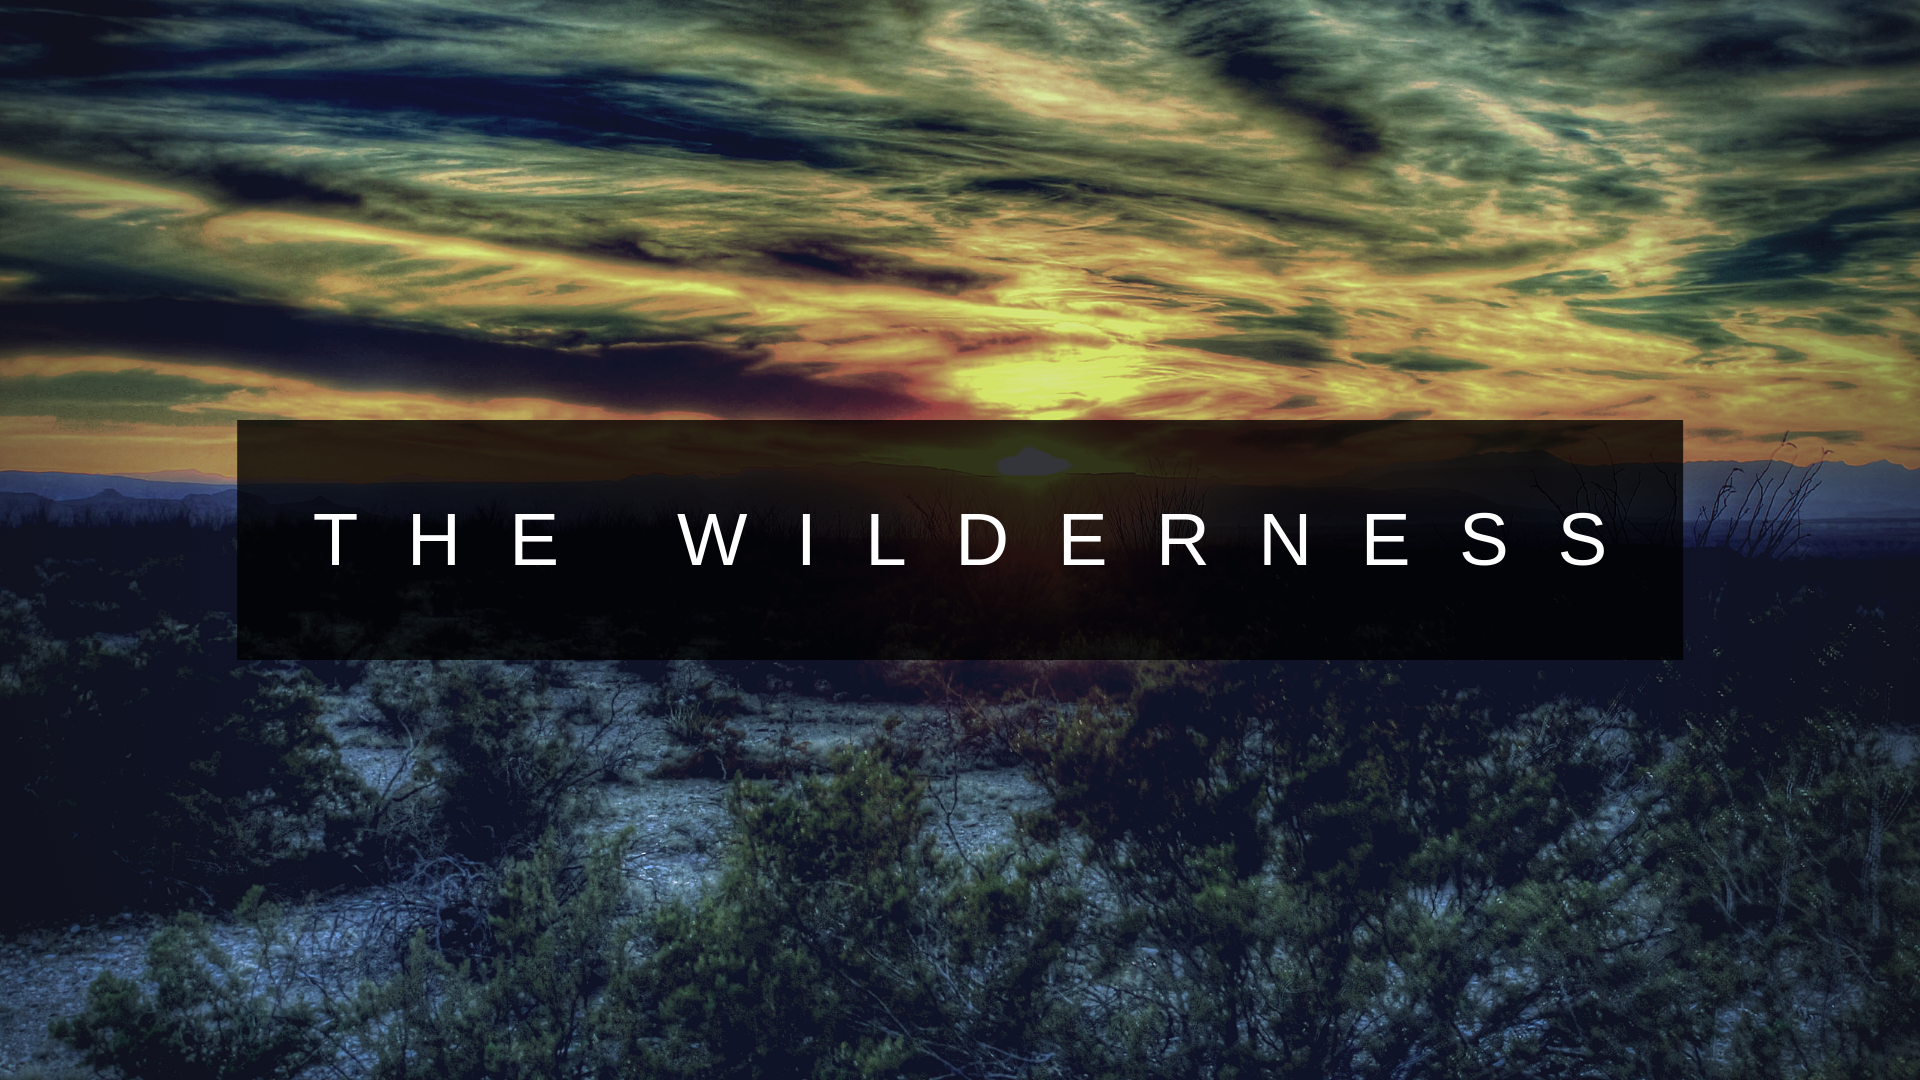 the wilderness - Who does Jesus say we are? Let's dig in and find out.